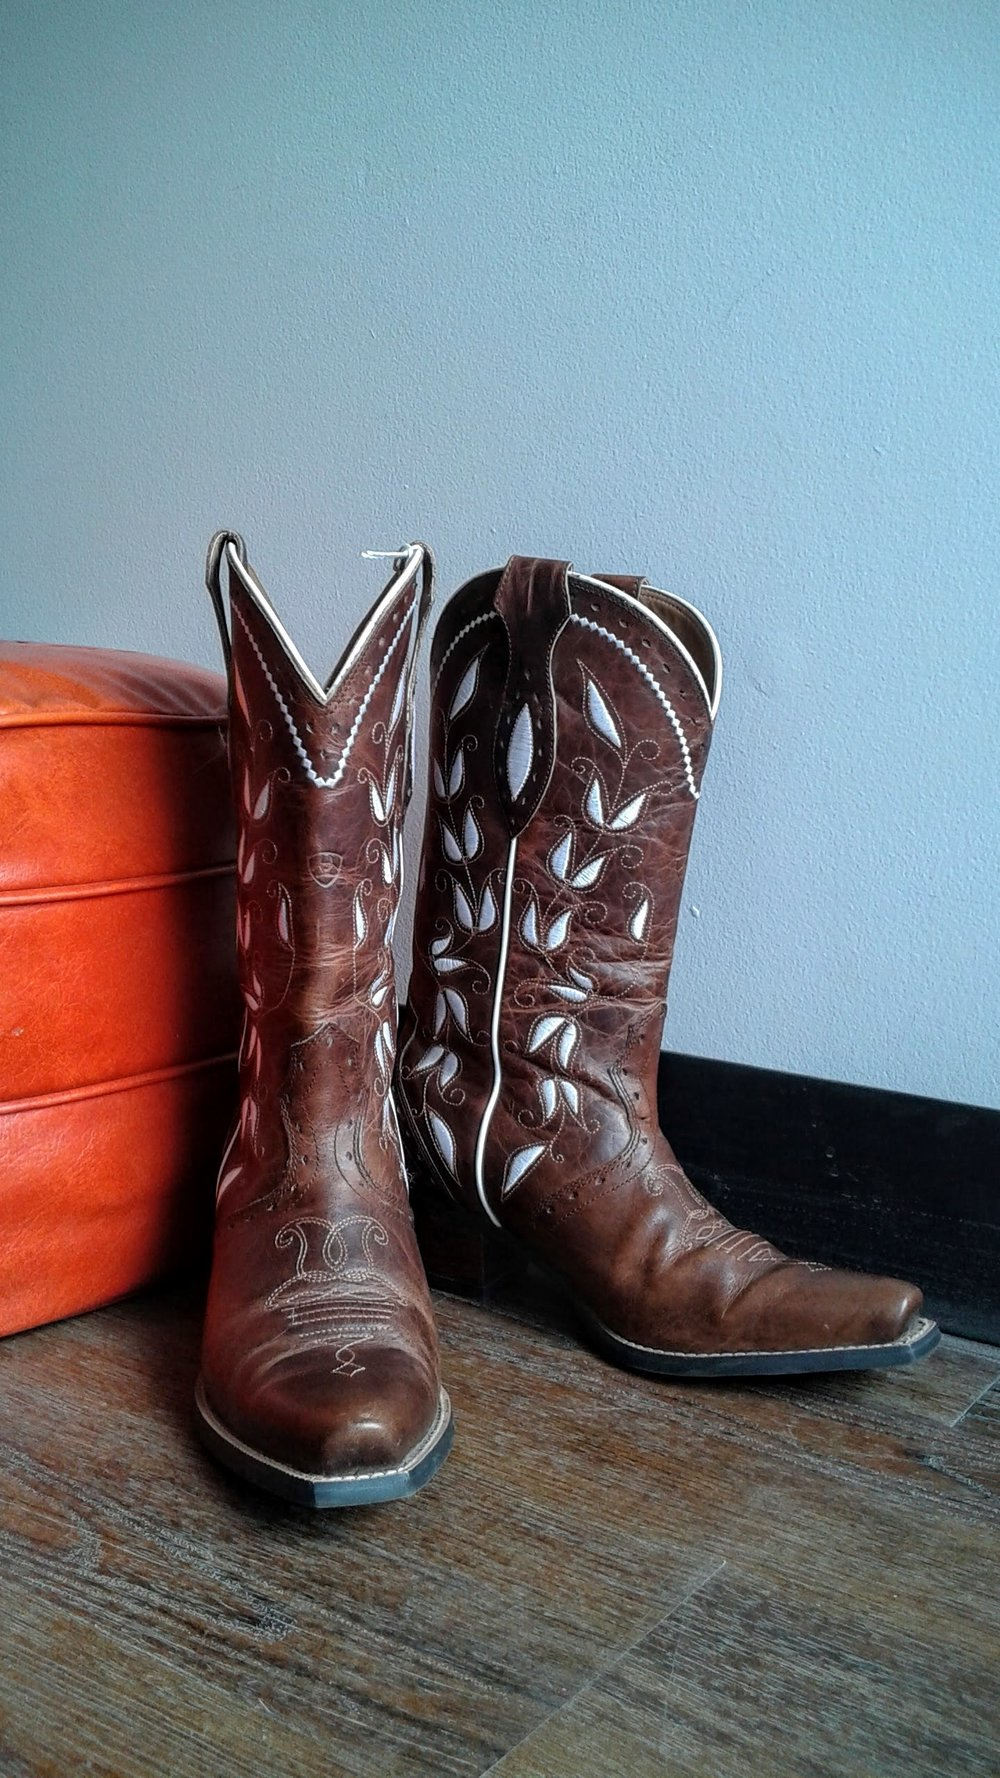 Ariat boots; S7.5, $125